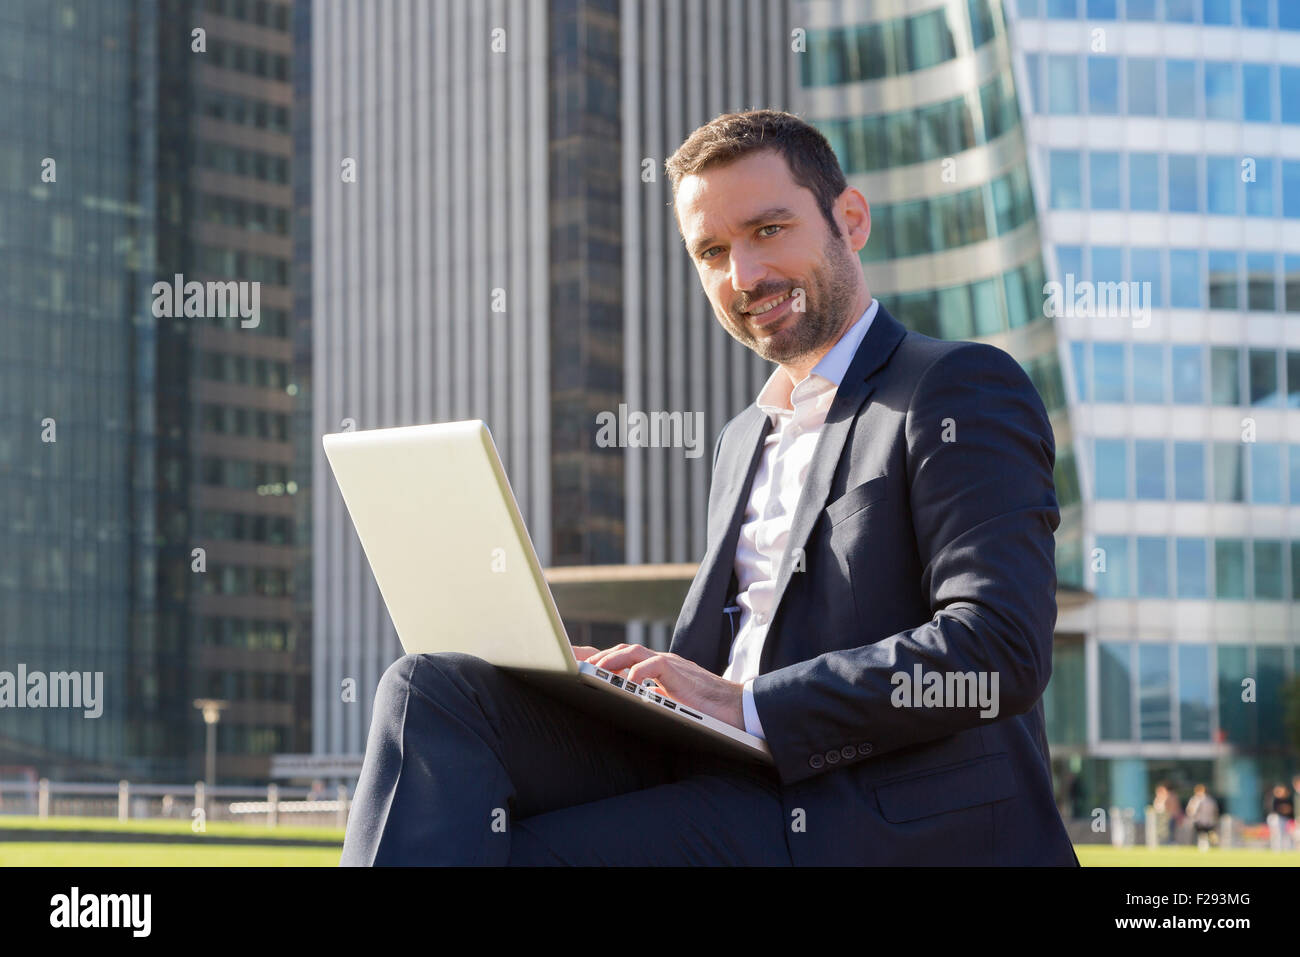 Businessman networking - Stock Image